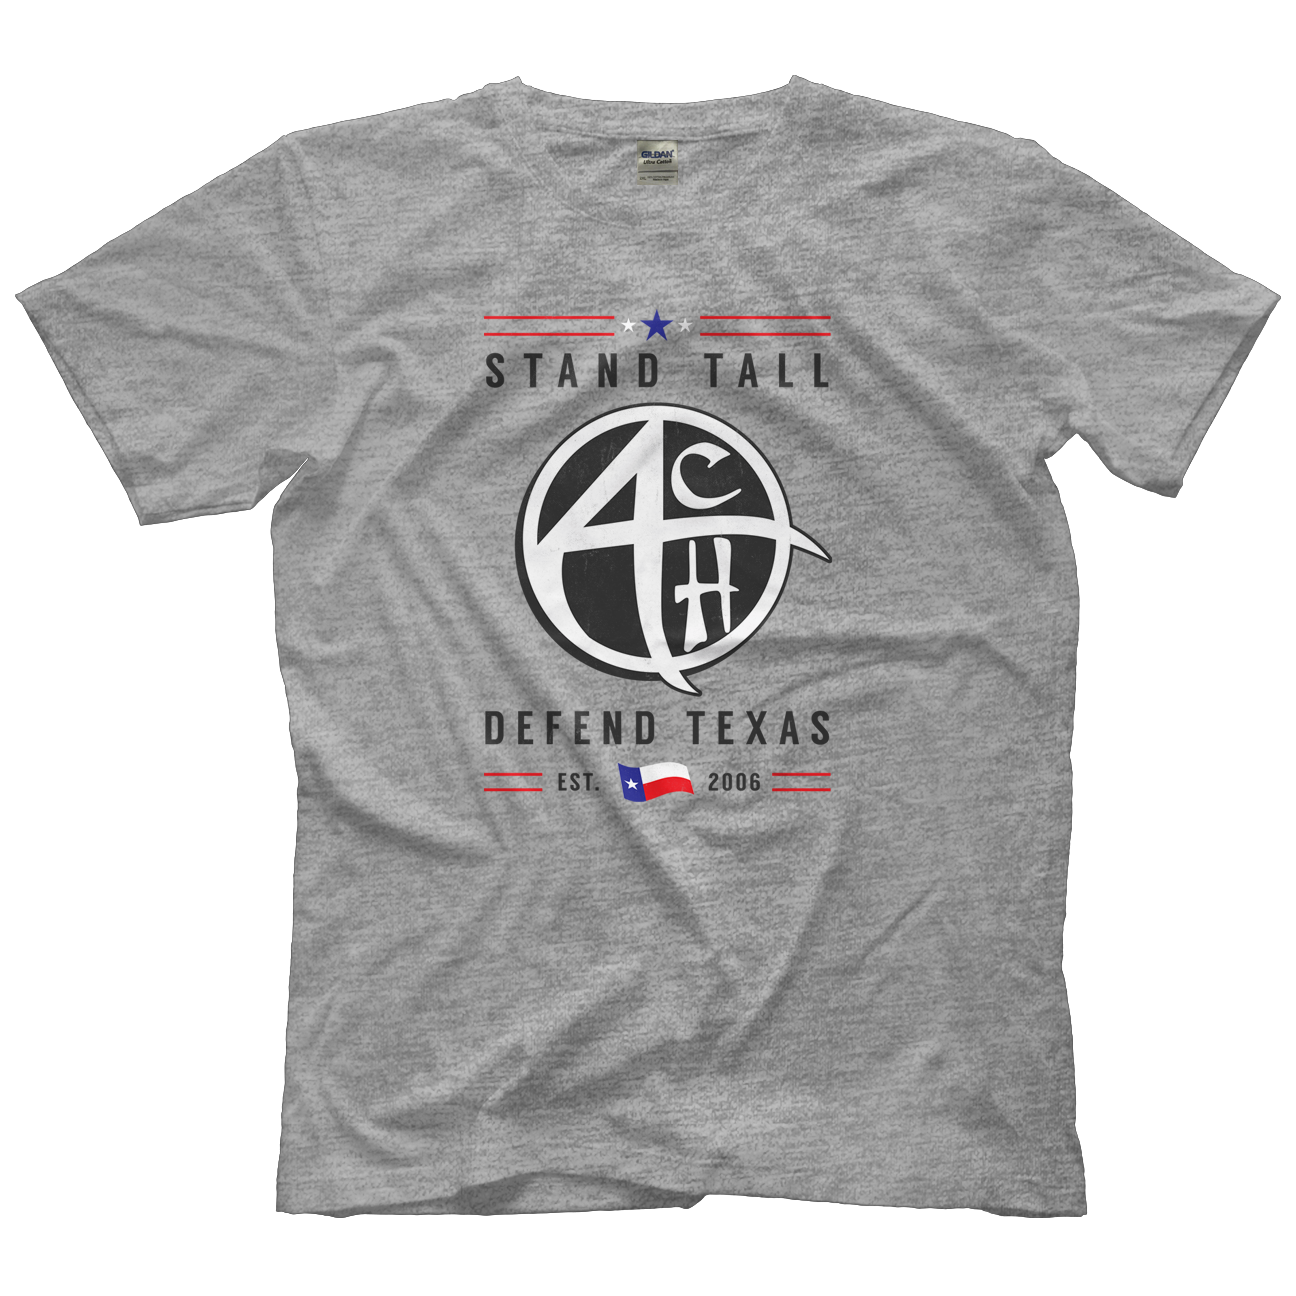 A.C.H. Defend Texas T-shirt